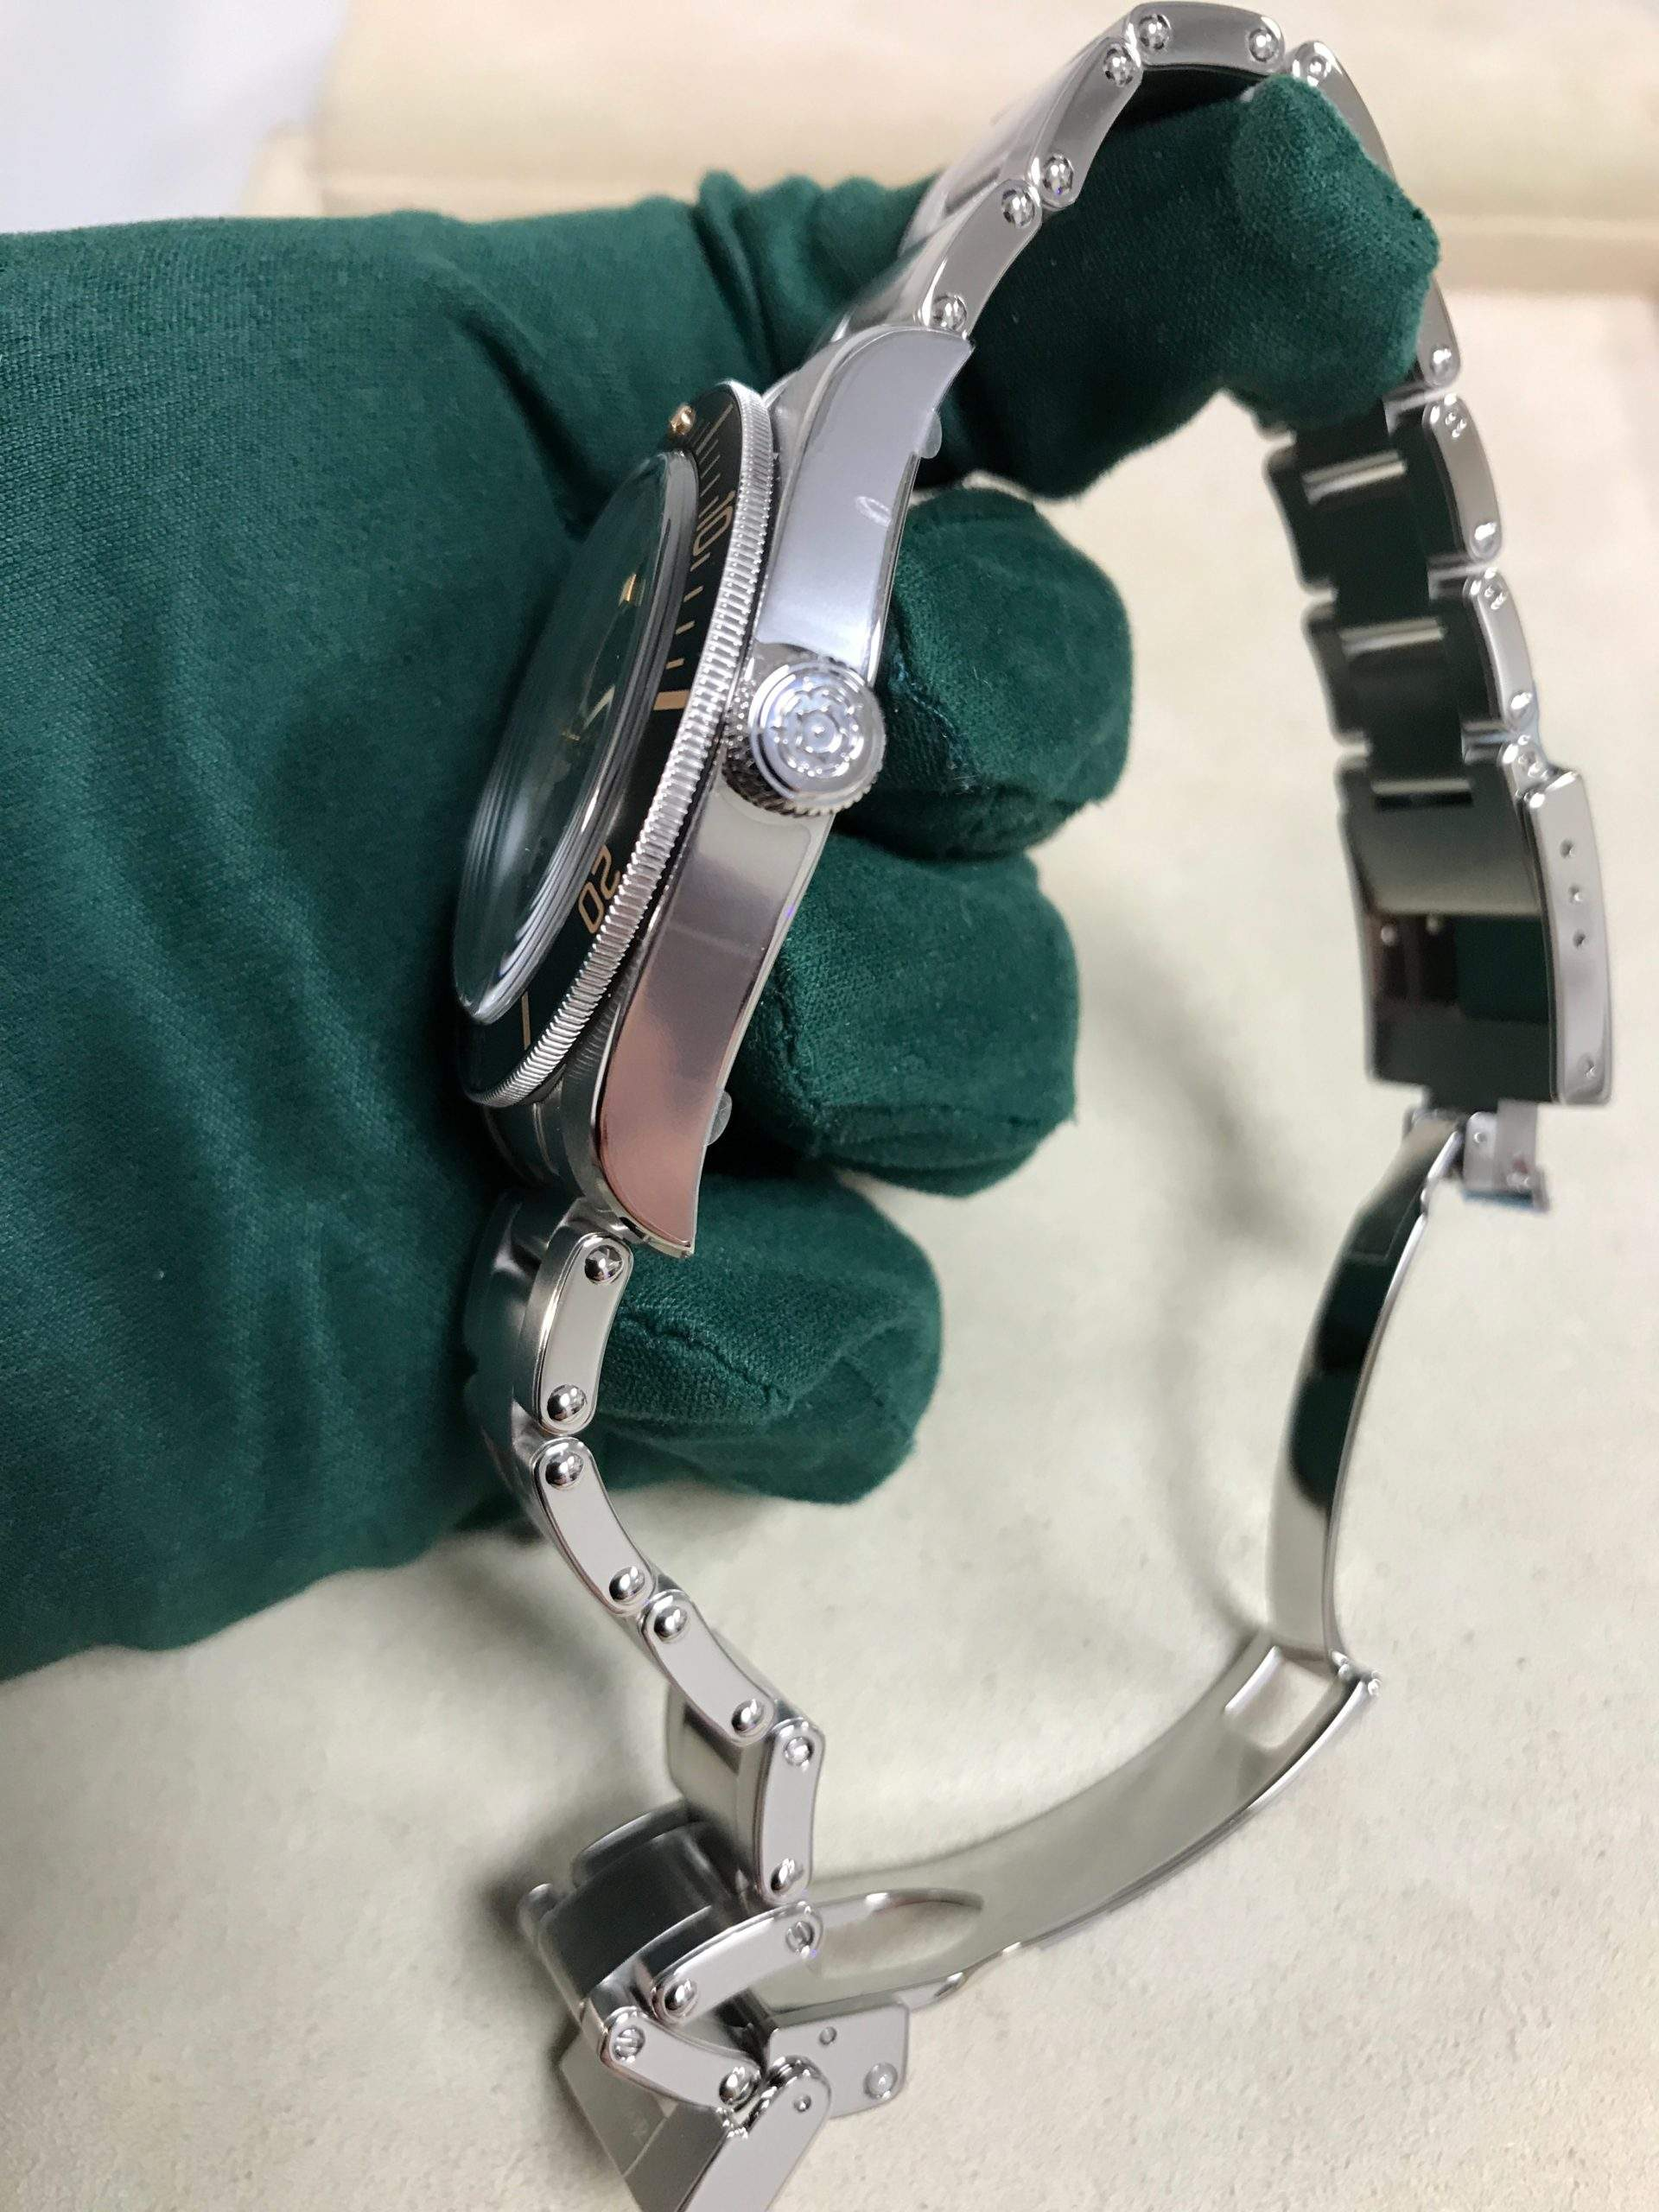 Black Bay fans have been waiting for a quick-adjustment clasp.